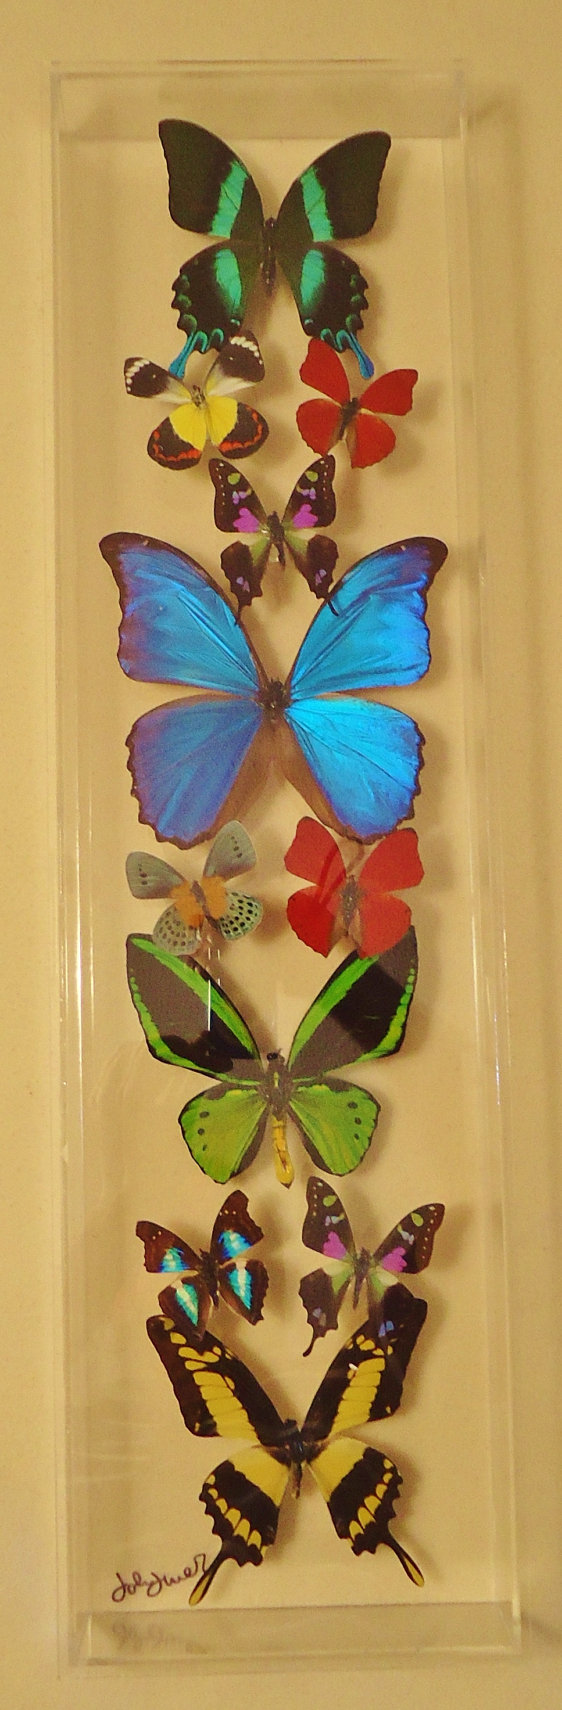 Butterfly display,real framed butterflies, real mounted butterflies ...